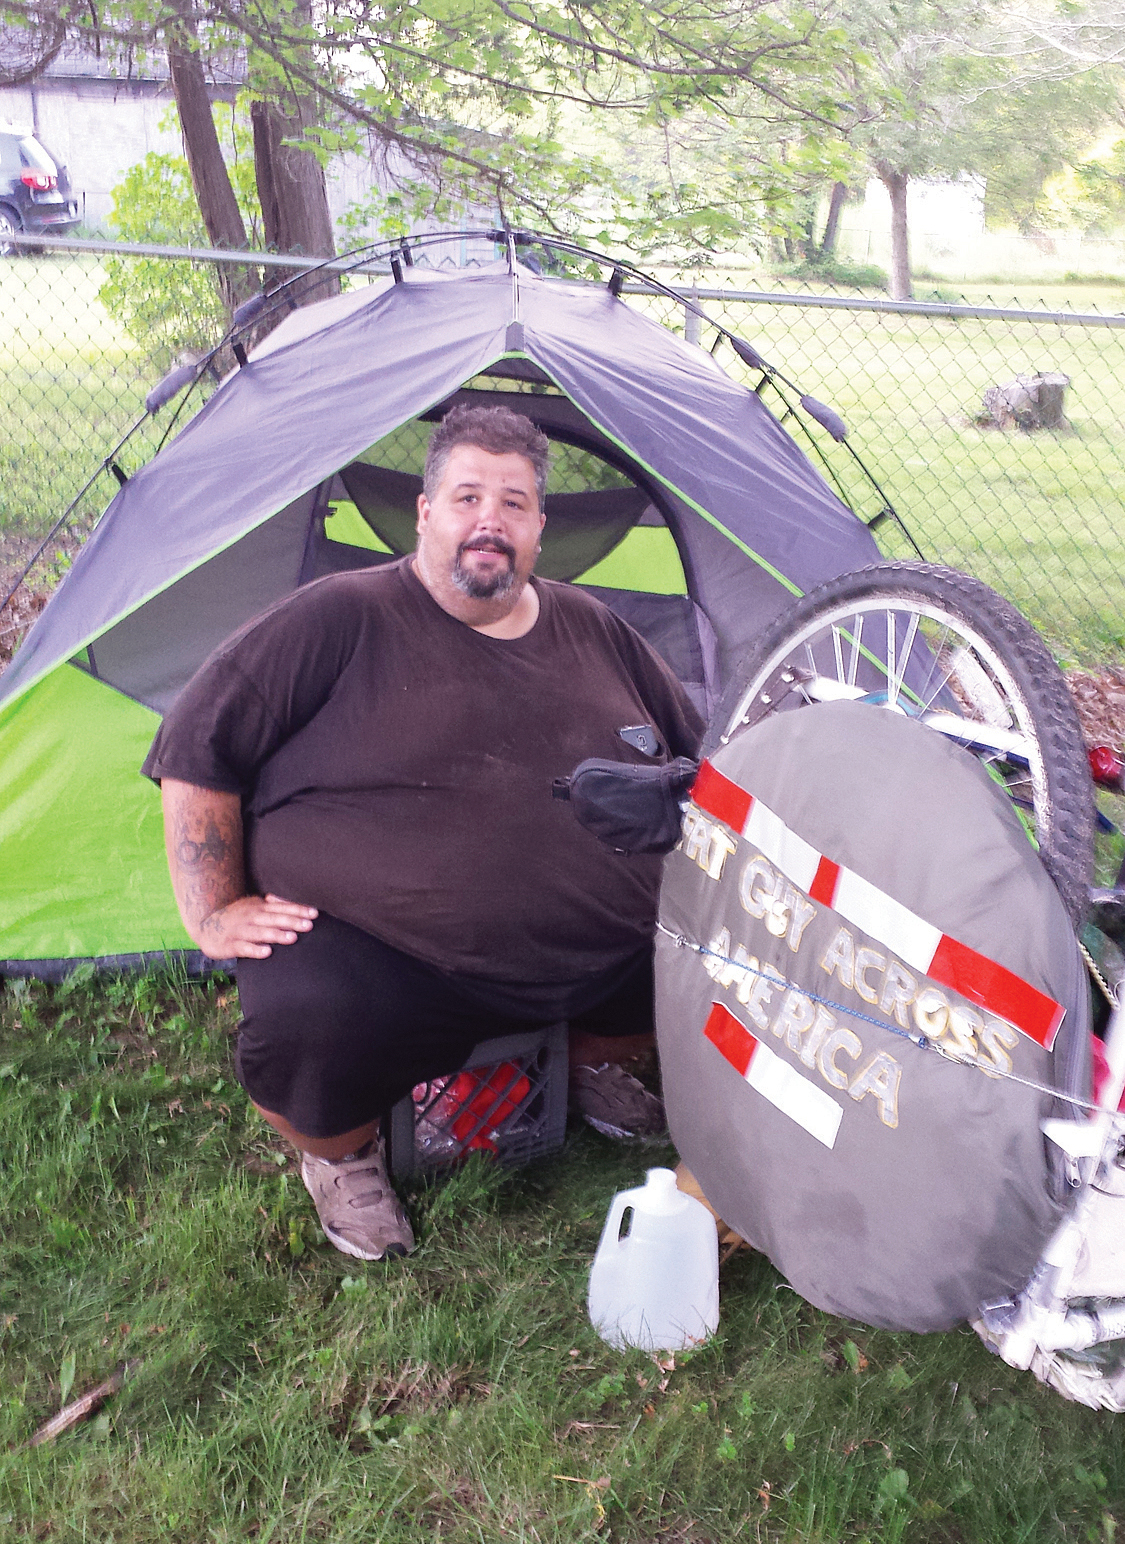 Eric Hites, rests at the Bliss Congregational Church in Tiverton, R.I on July 21, 2015, while he waits for a new bicycle so he can continue his cross-country ride. The about 560-pound man is biking across the United States to lose weight.